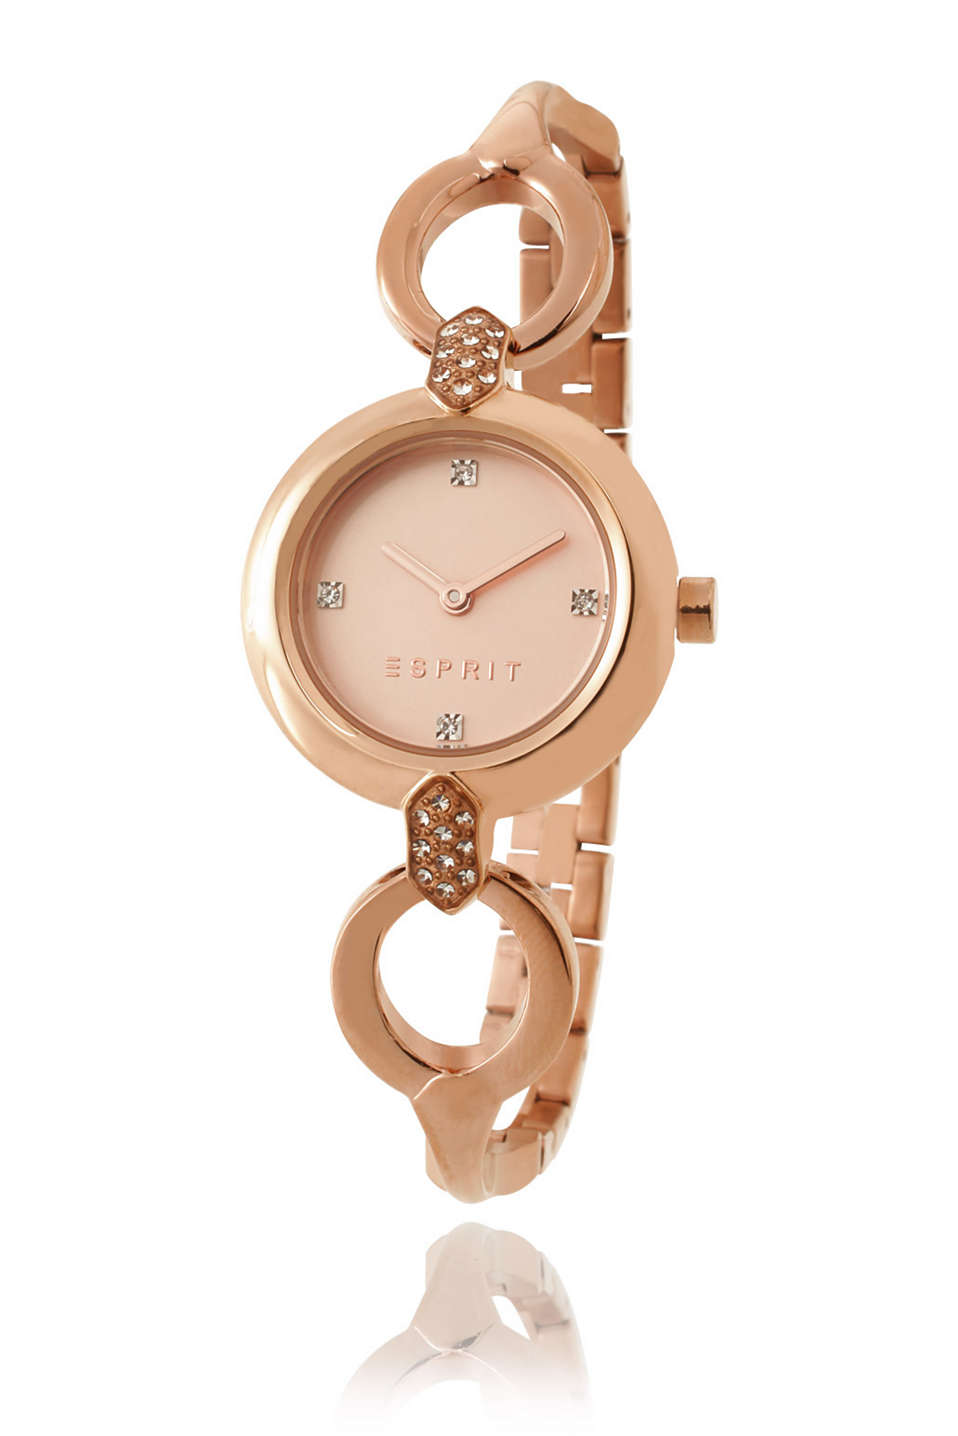 Rose gold coloured, stainless-steel watch with an elegant metal strap and rhinestones, Ø approx. 26 mm